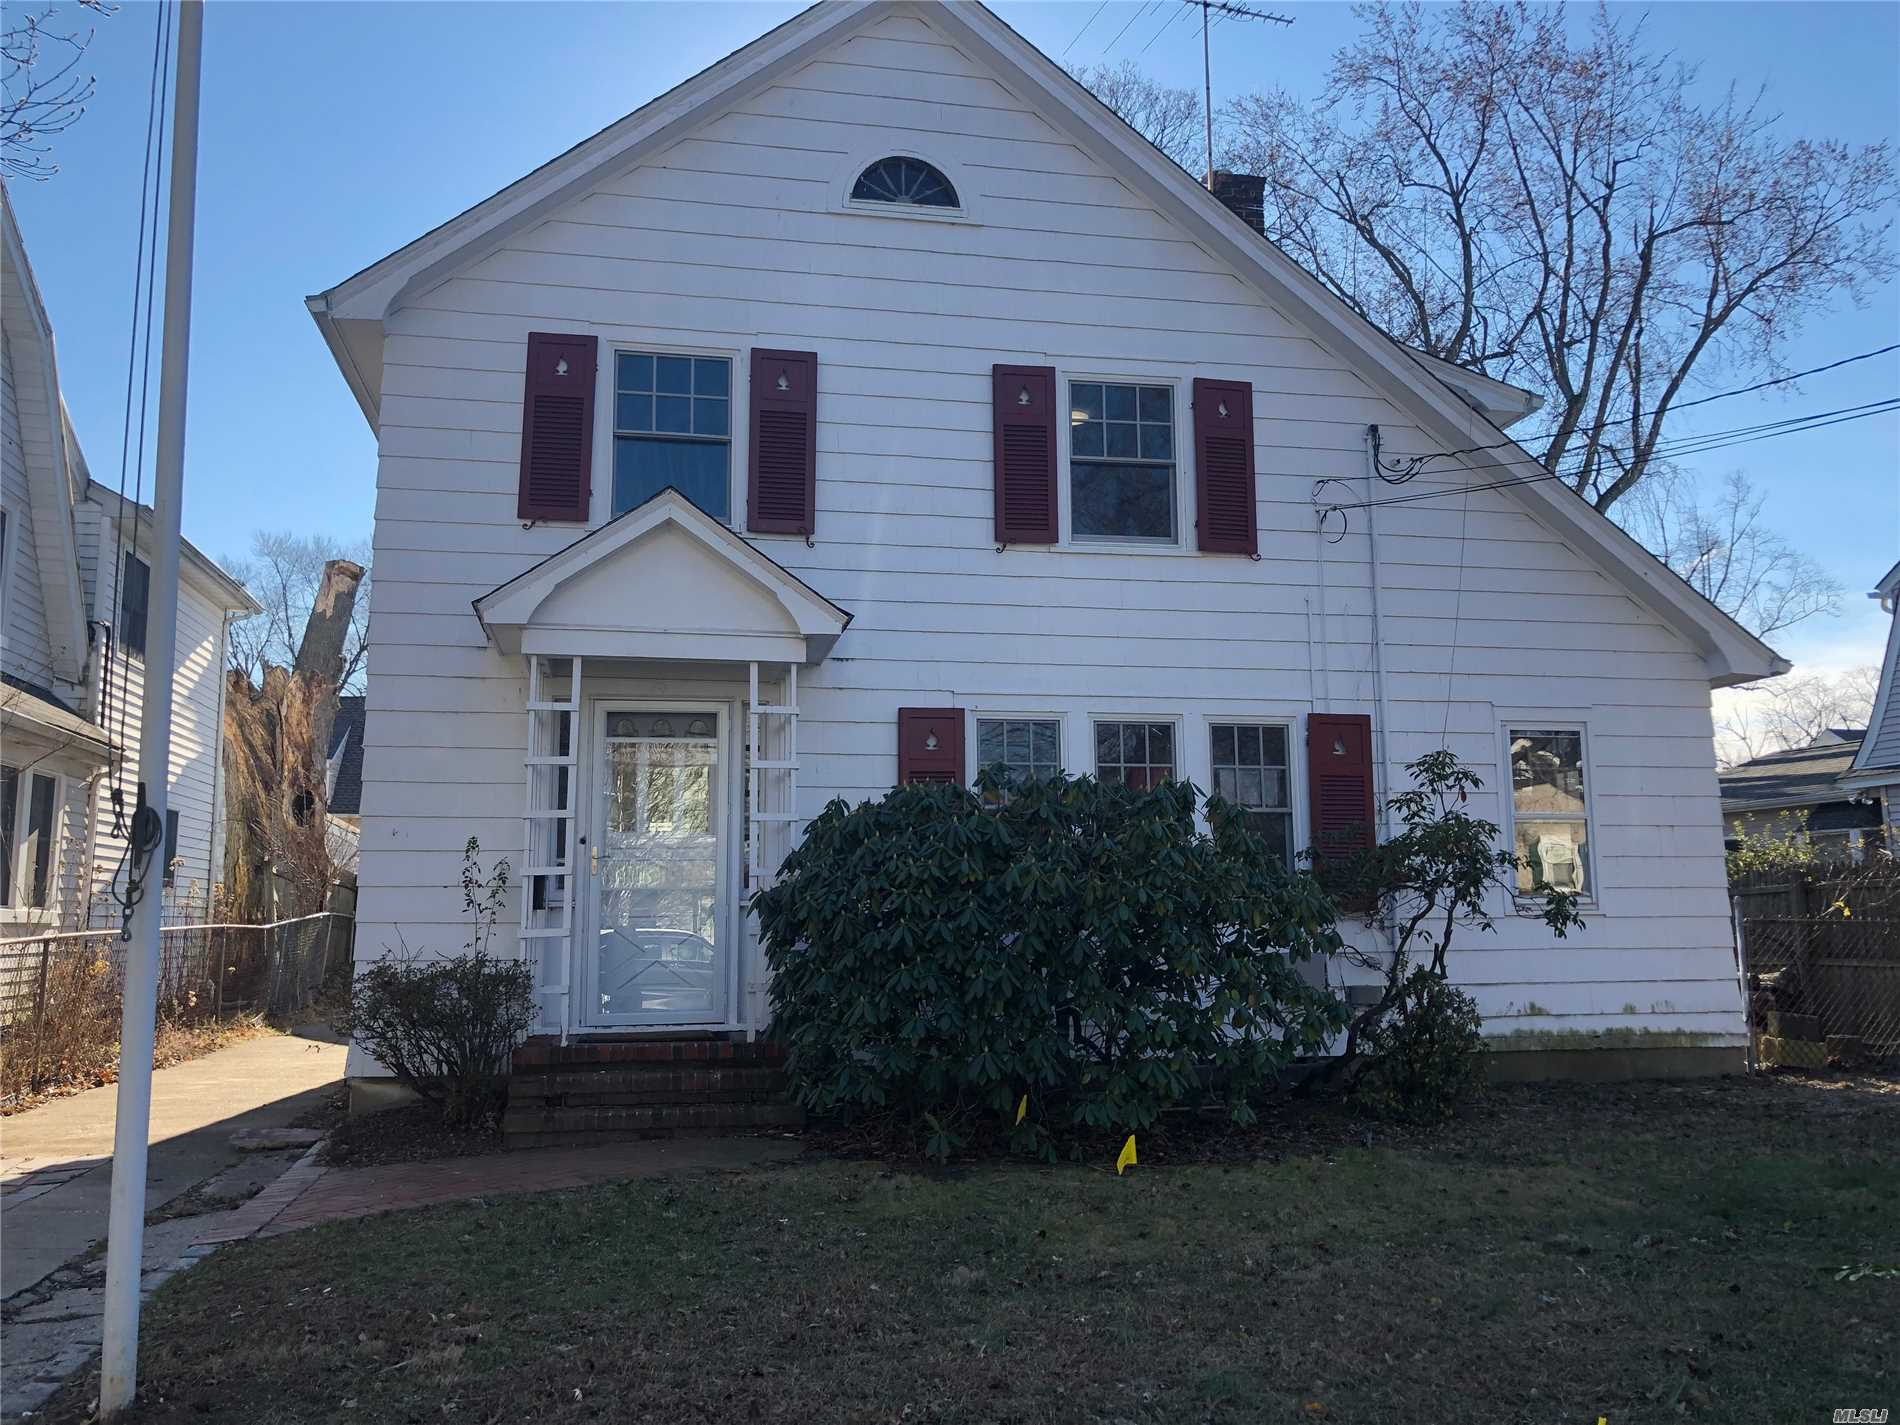 Charming Updated 3 Bedroom Colonial. 1 Full Bath And 2 Half Baths, Eat In Kitchen, Den, Hardwood Floors, New Gas Heating, New Cac, New Windows, 2 Car Garage, , New Washer And Dryer,  Guggenheim Elementary School. Easy Walk To Lirr, Schools, And Shopping.